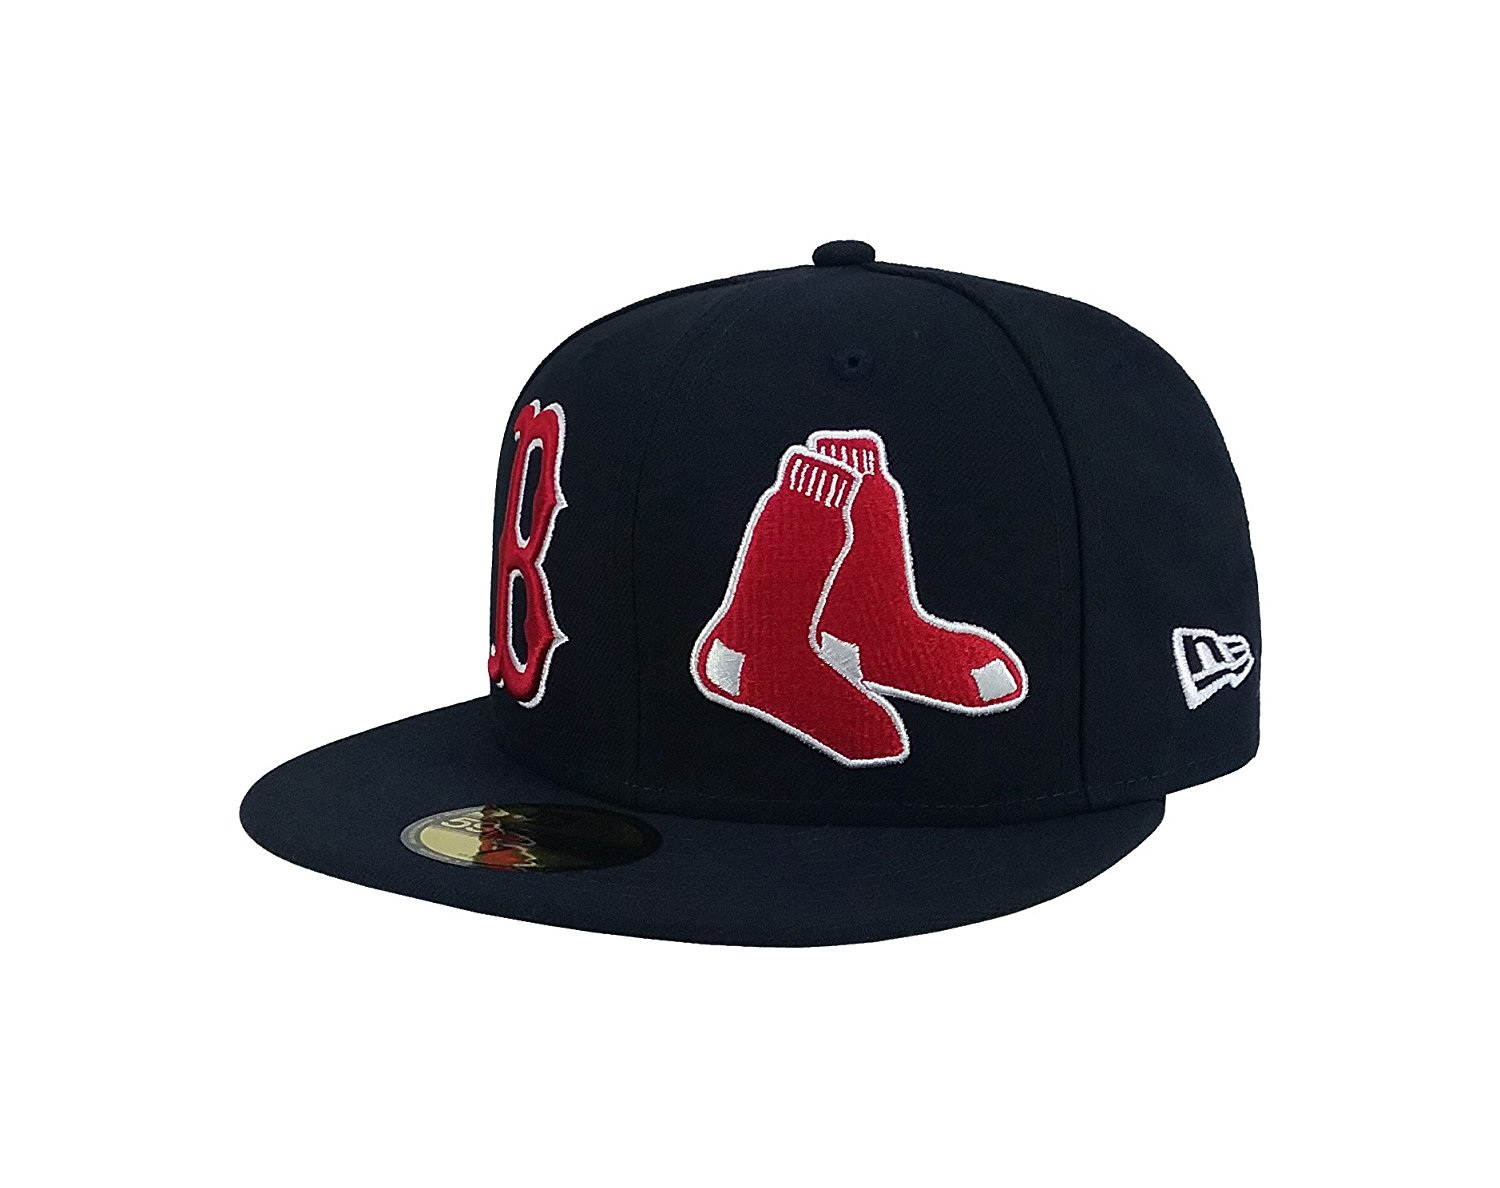 new concept 77623 8ed53 Get Quotations · New Era 59Fifty Hat MLB Boston Red Sox Heritage Patch d Up  Fitted Navy Blue